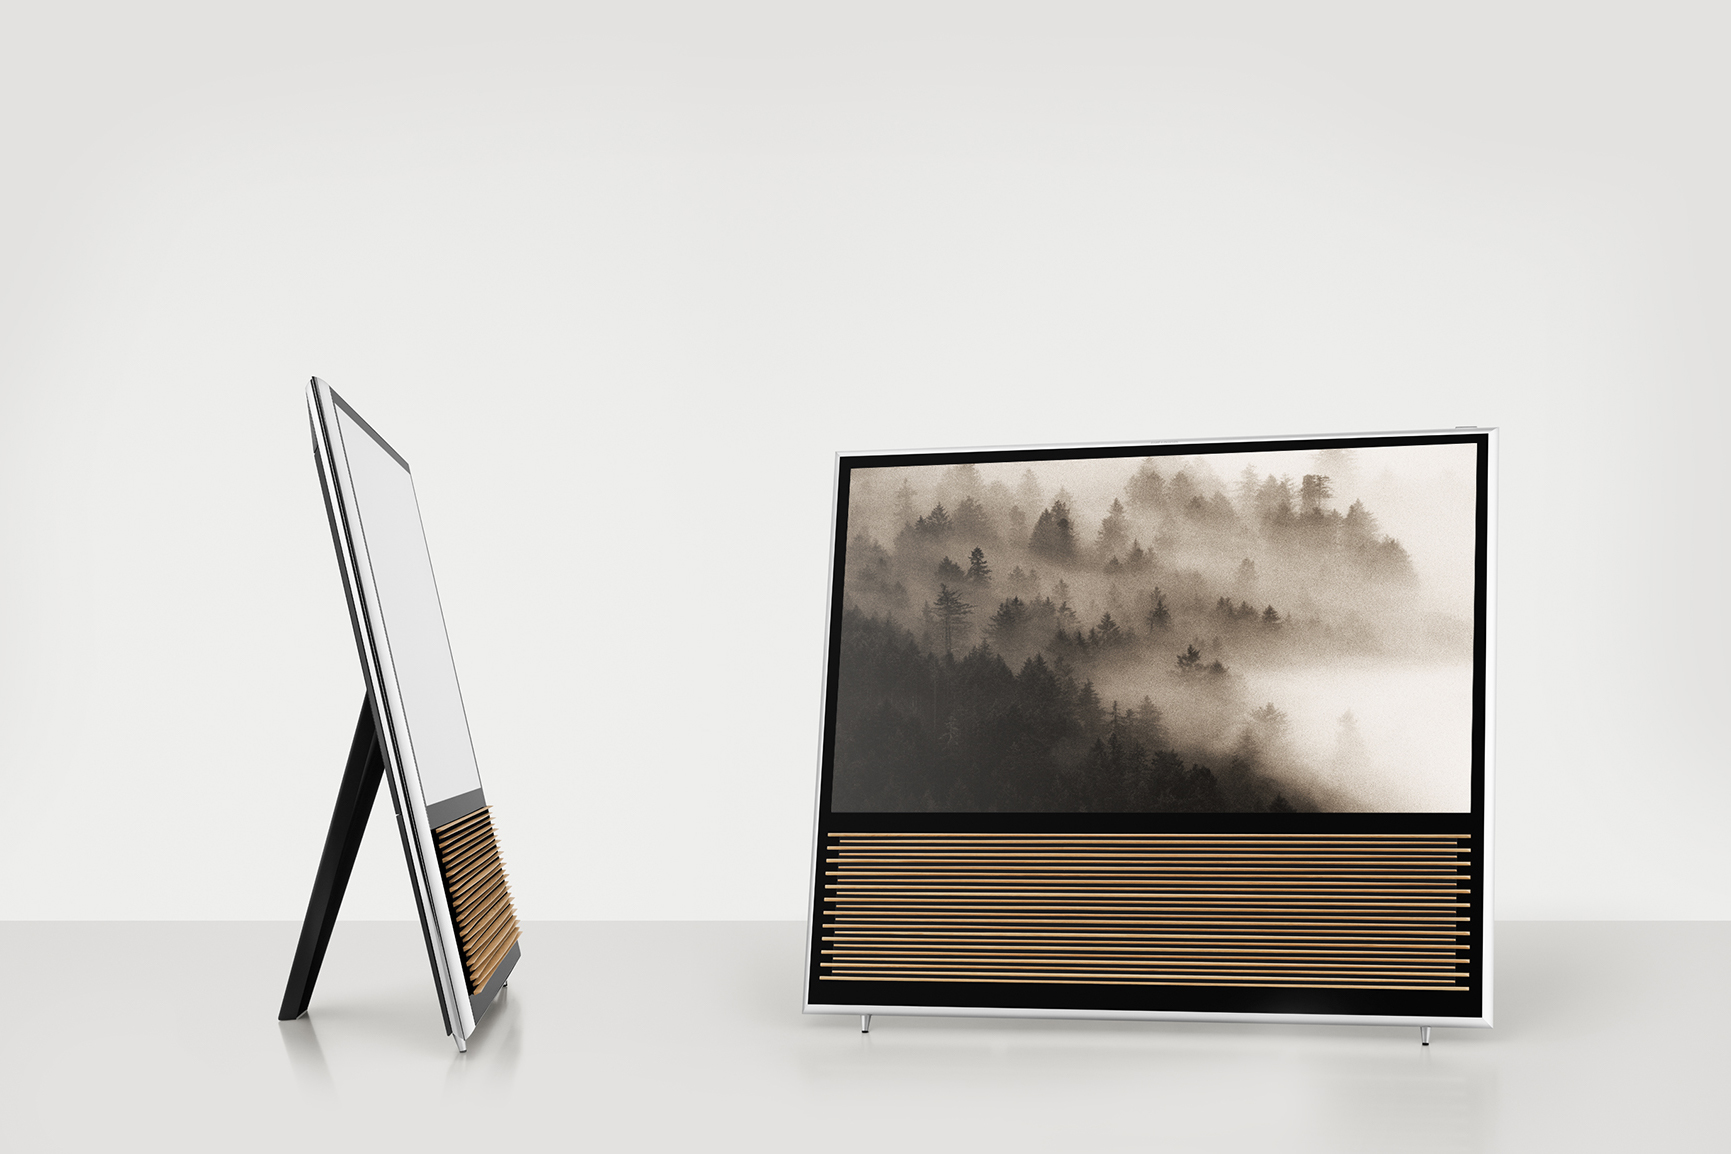 bang olufsen 39 s beovision 14 fuses nature with technology hypebeast. Black Bedroom Furniture Sets. Home Design Ideas